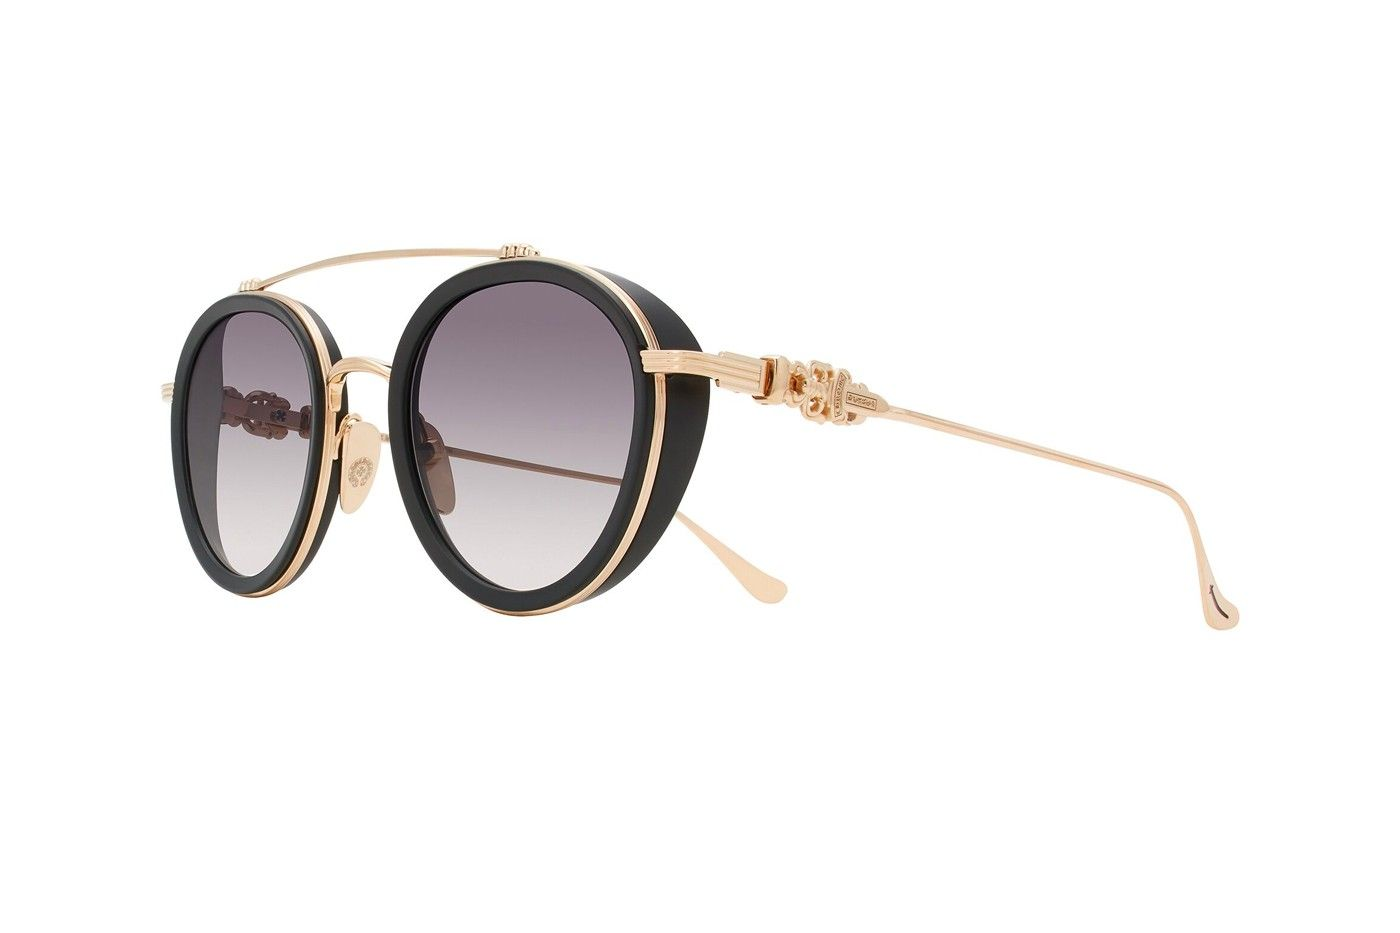 f552711b54b Chrome Hearts Delivers A Colorful Eyewear Collection for SS19 ...